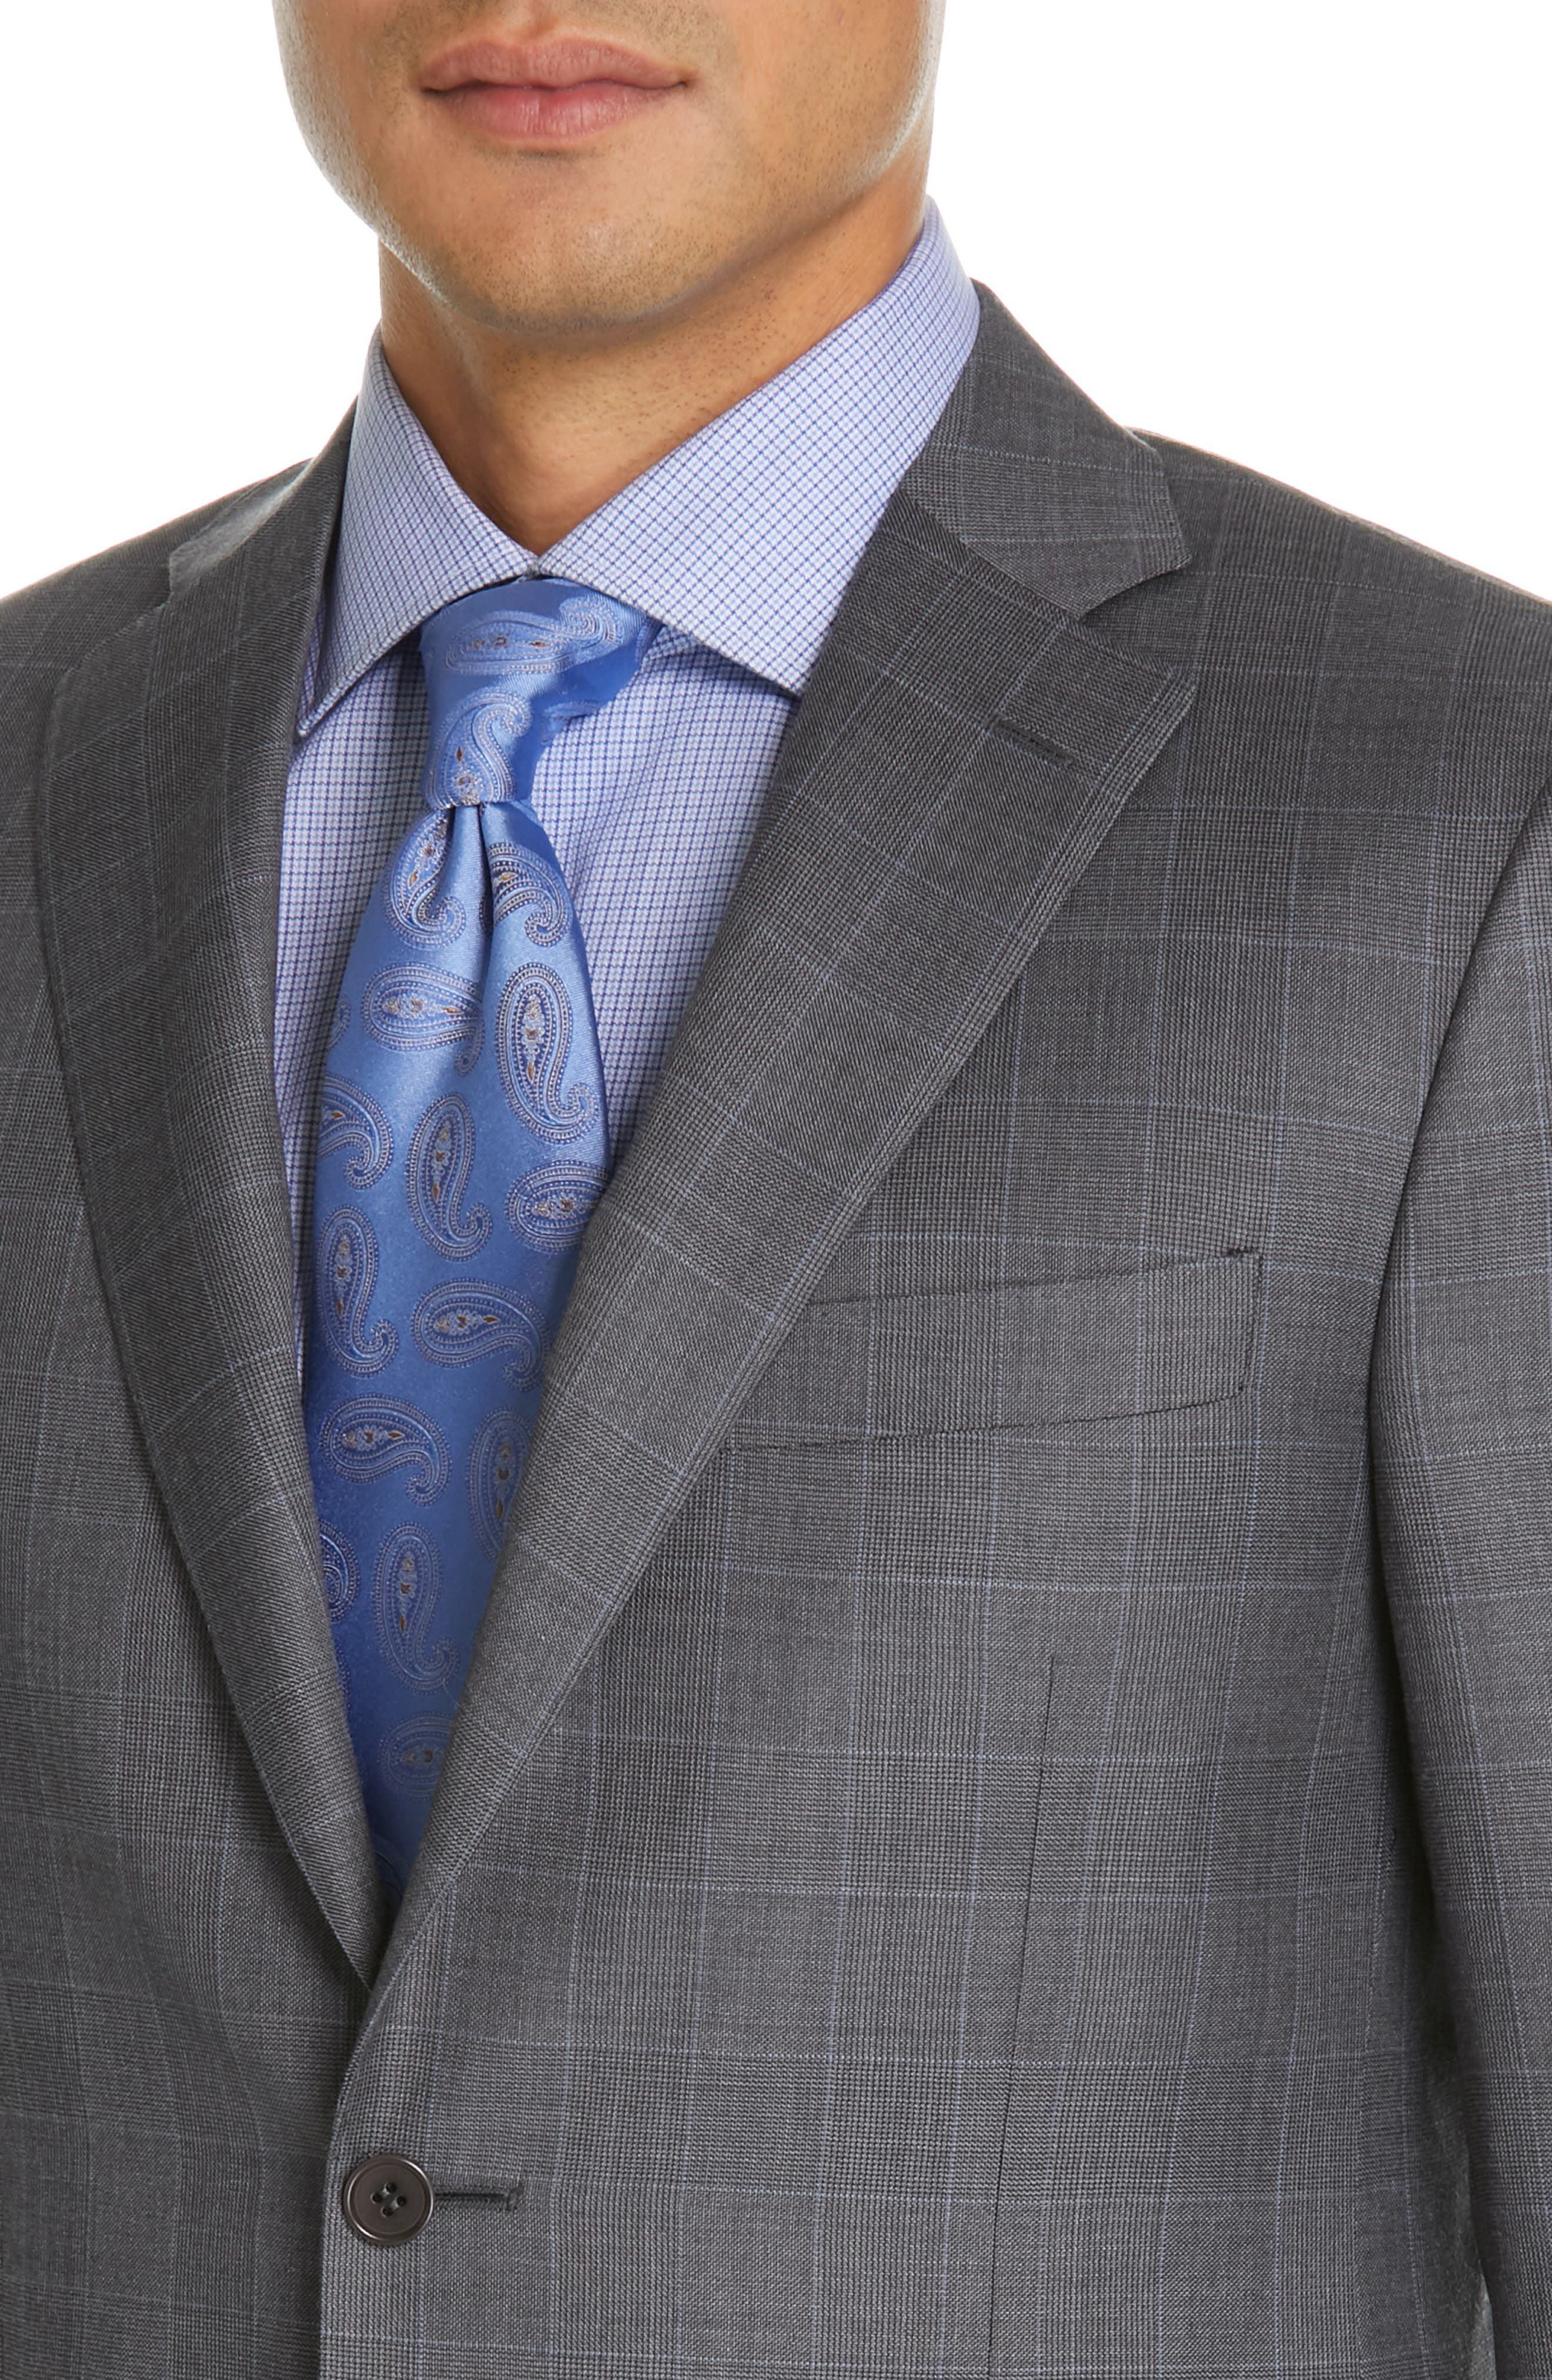 CANALI, Sienna Classic Fit Plaid Wool Suit, Alternate thumbnail 4, color, GREY